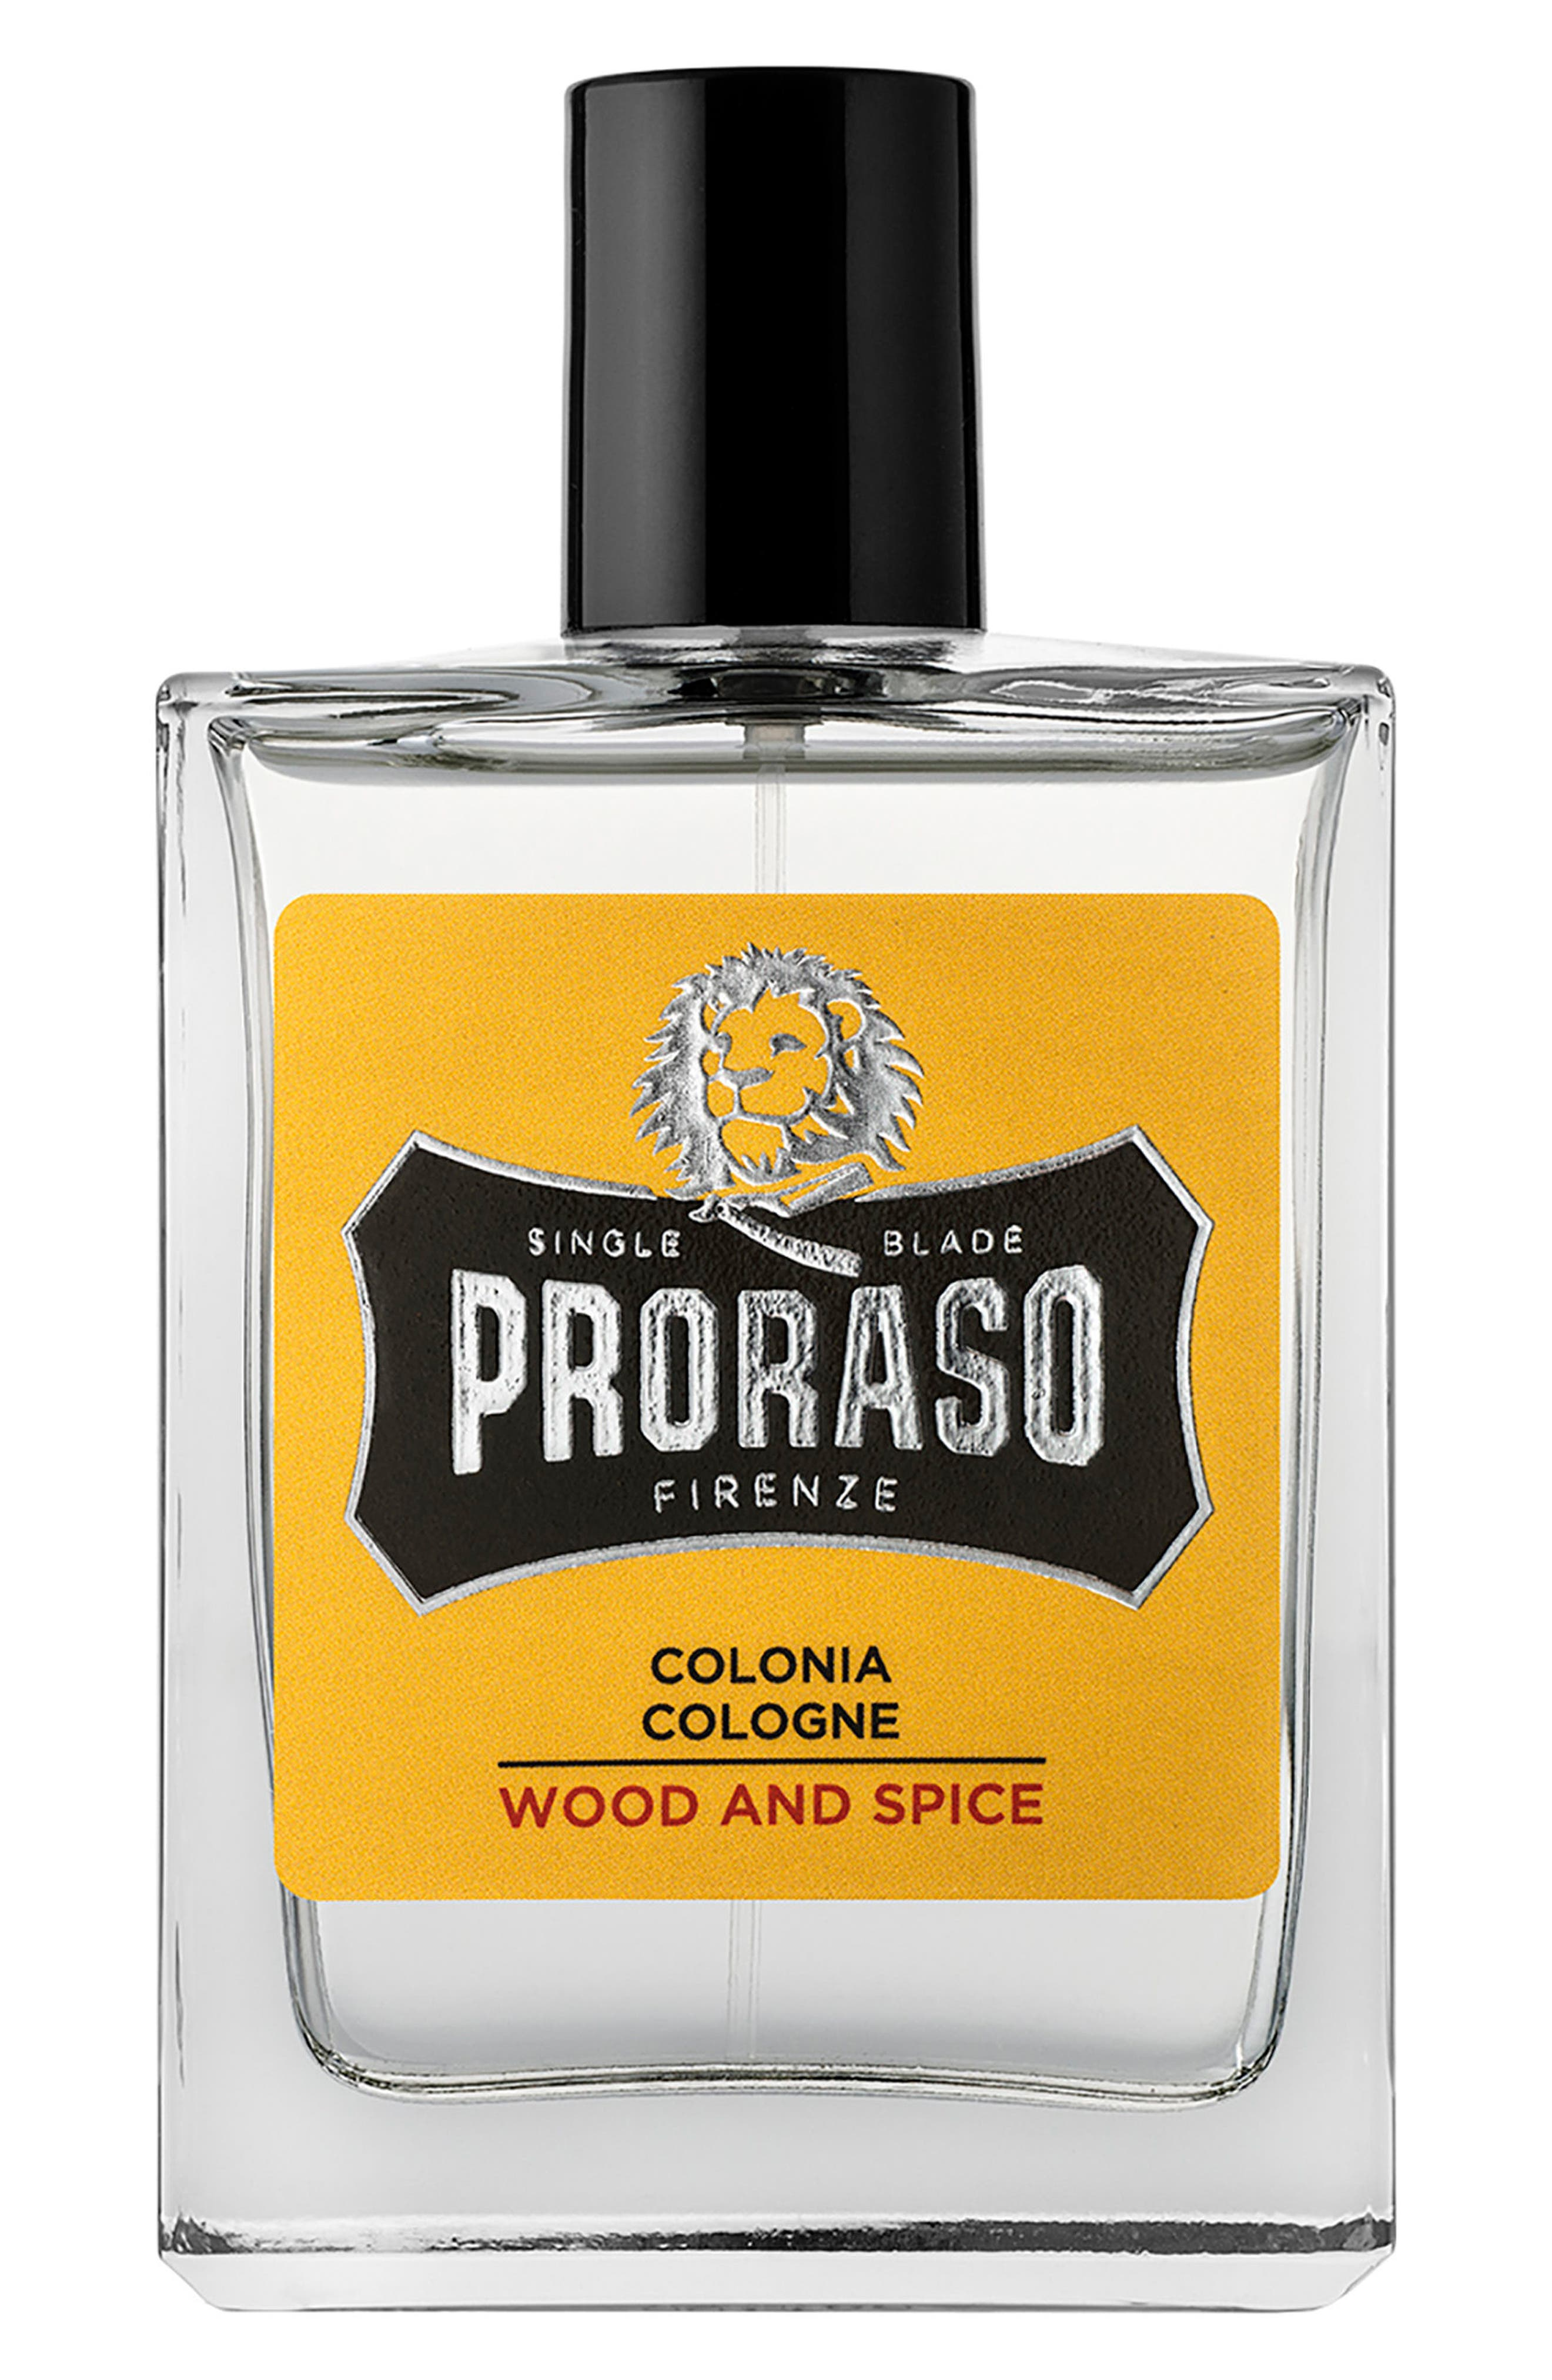 What it is: A cologne that provides the perfect finishing touch to your grooming ritual. Fragrance story: Proraso\\\'s classic and masculine Wood and Spice fragrance has bold and velvety notes that go hand in hand with delicate violet leaves and spiced hints of cumin and saffron. Sophisticated cedarwood and guaiac wood blend with soft amber notes and a mild hint of vanilla. It is an intense and rewarding aromatic sensation that leaves you with the